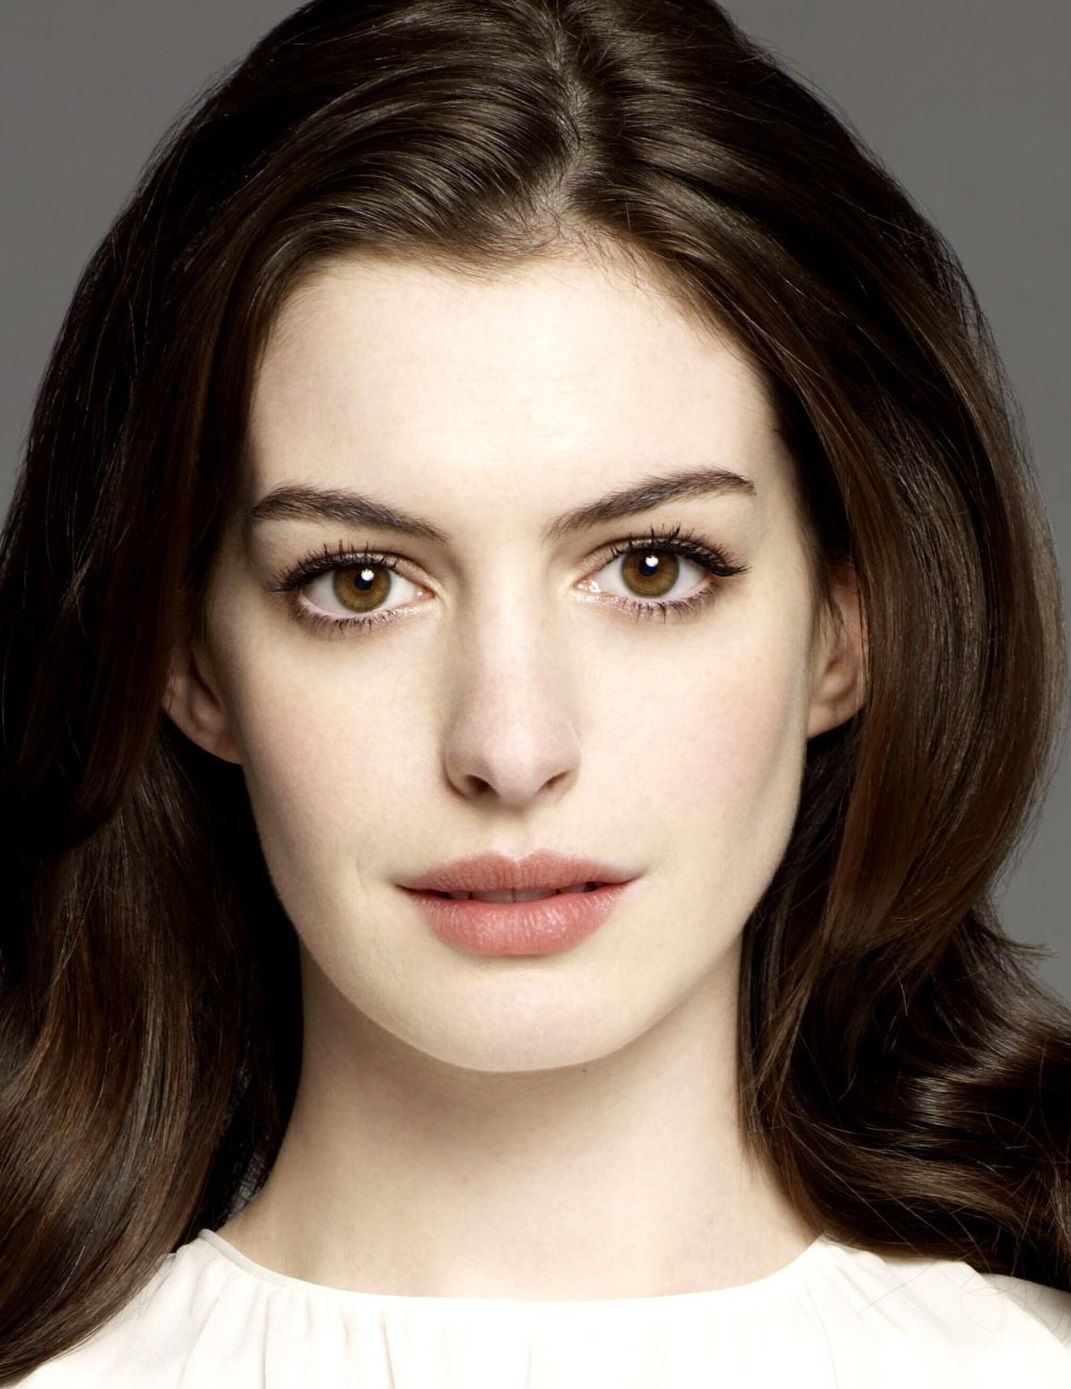 Anne Hathaway More Like Me Pinterest Anne Hathaway Celebrity